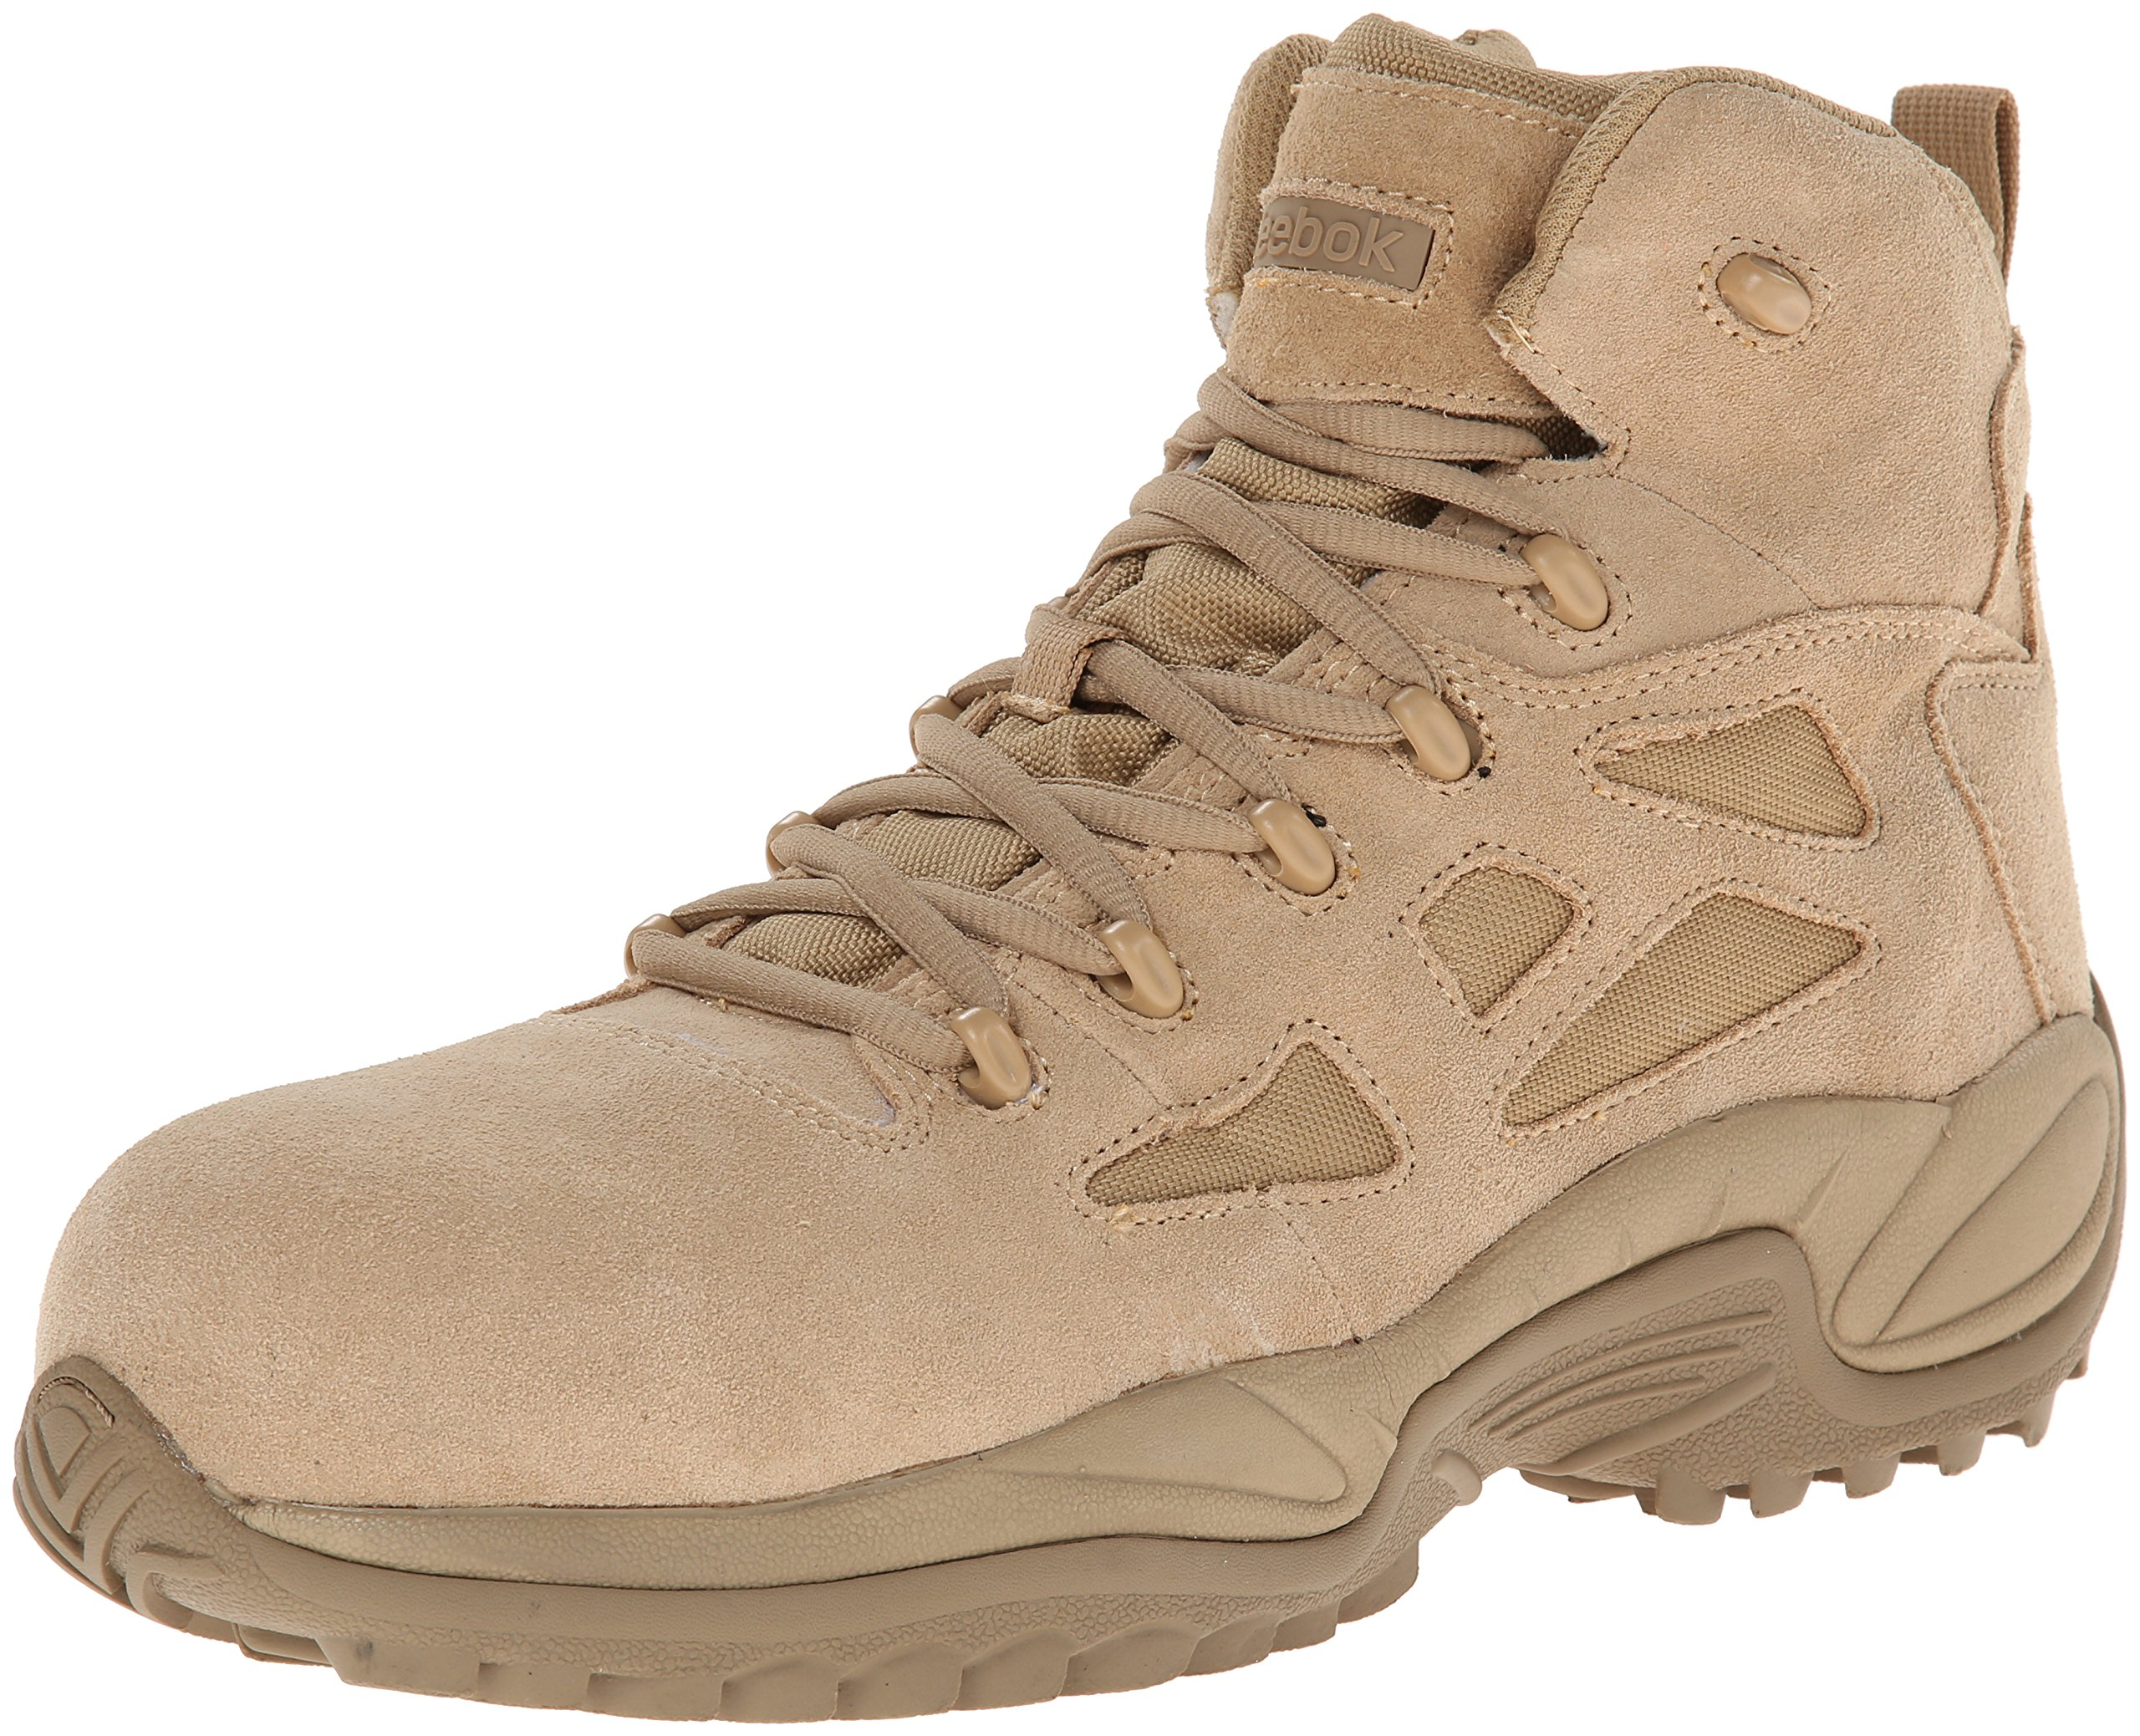 Reebok Work Men's Rapid Response RB8694 Safety Boot,Tan,10 W US by Reebok Work